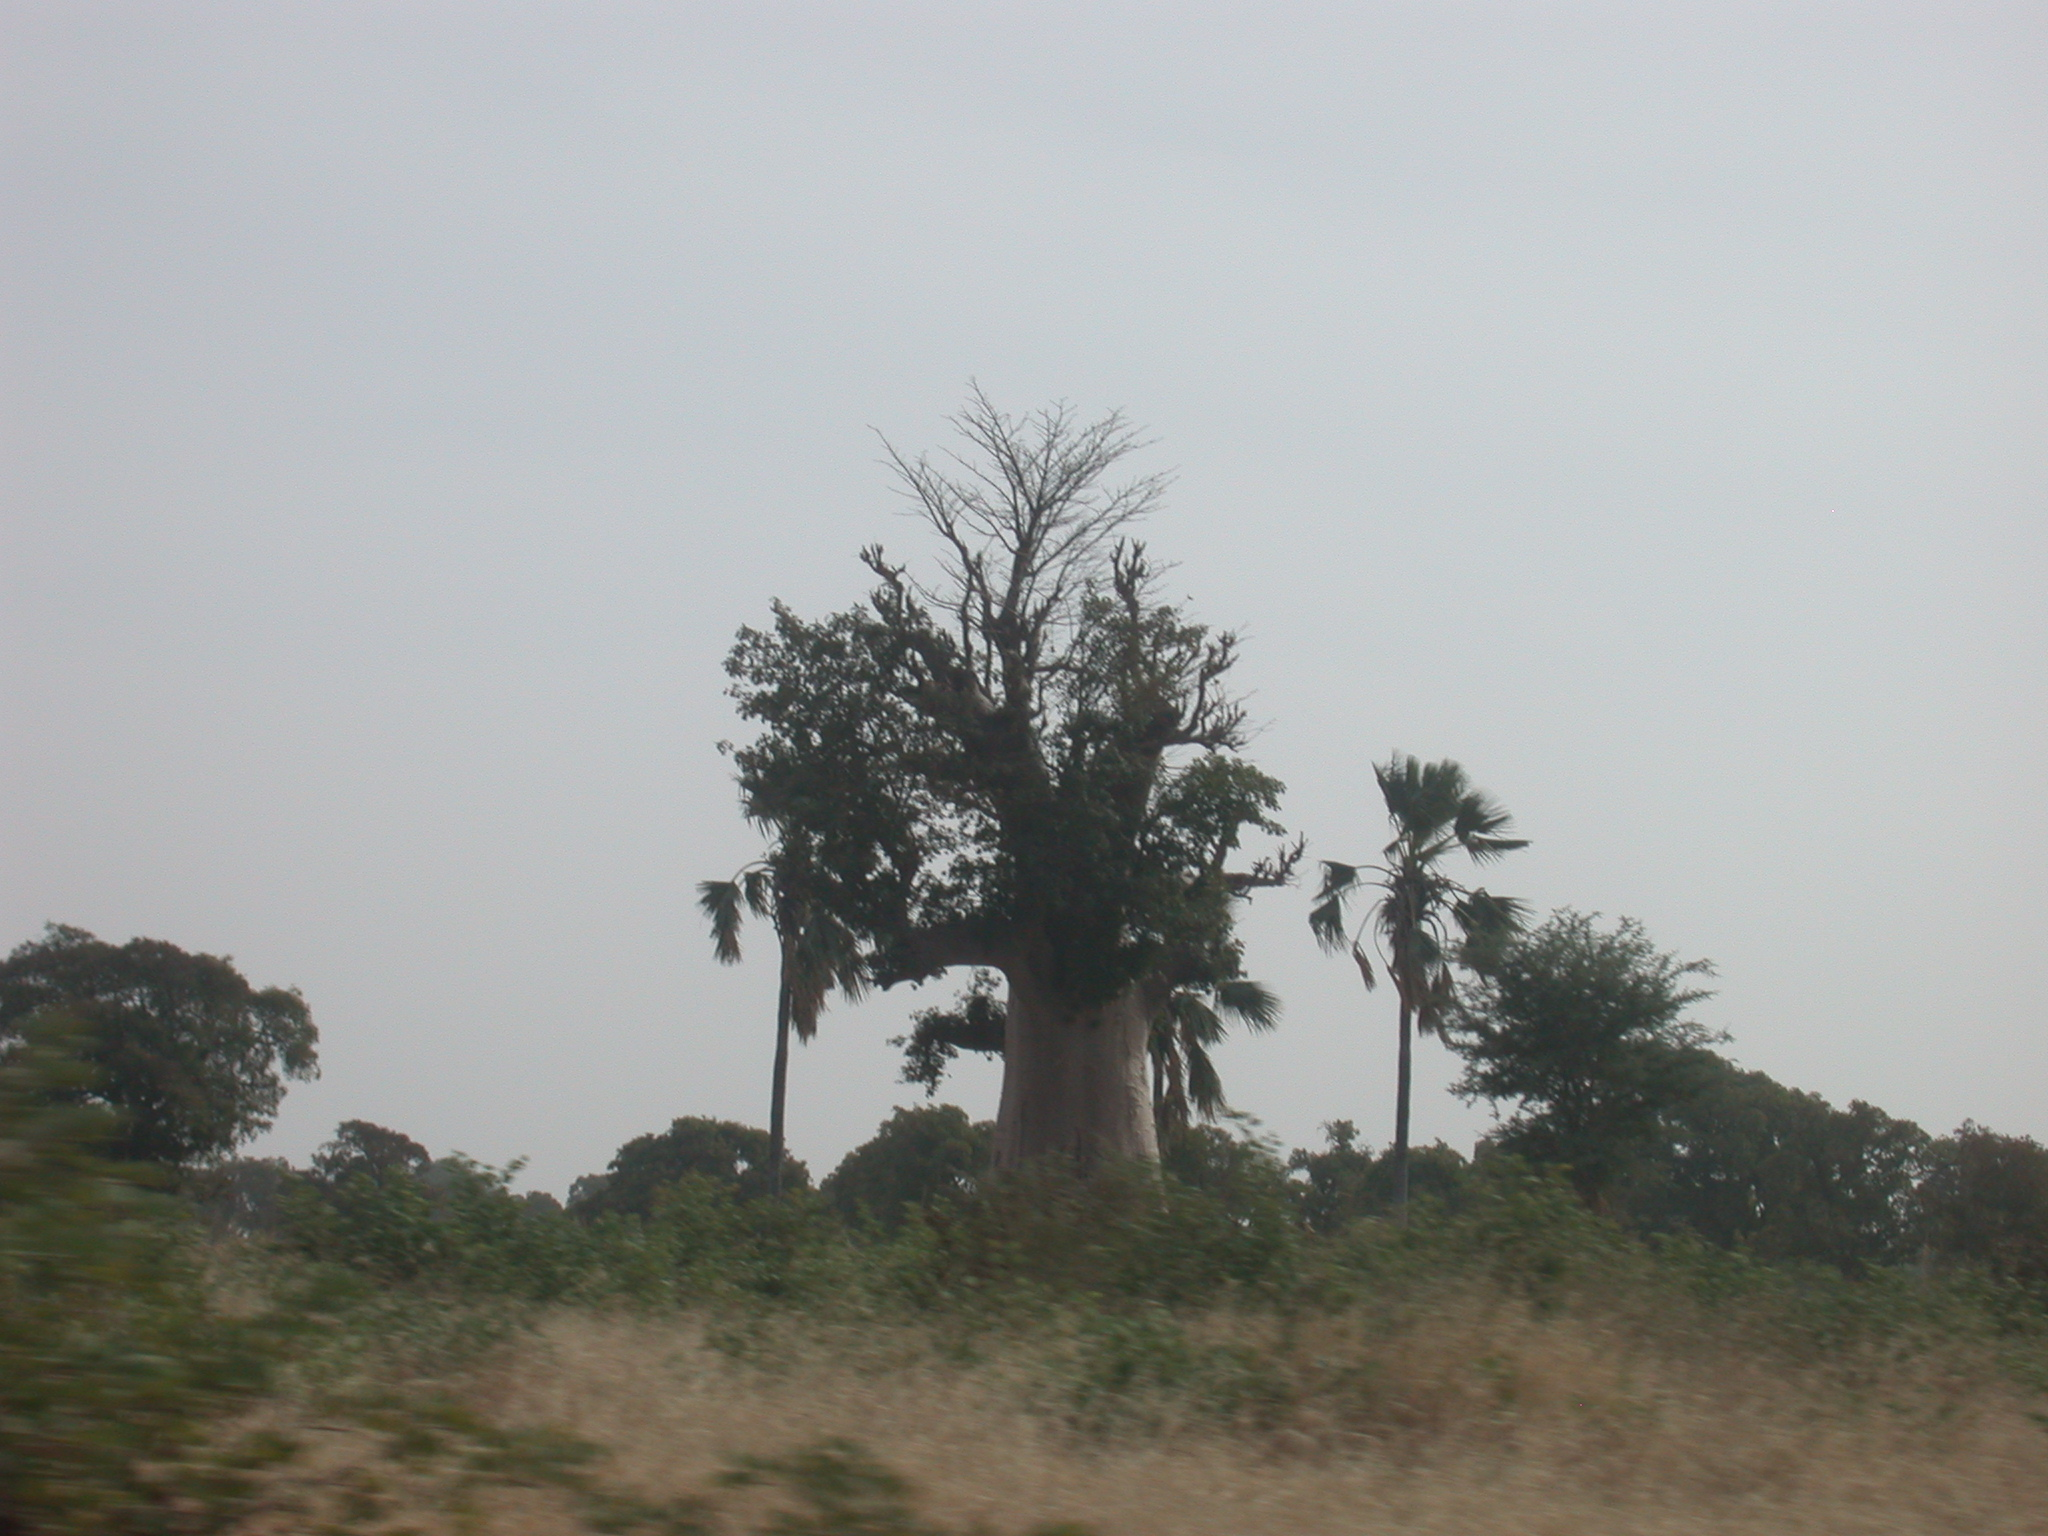 Baobab Tree and Palm Trees on Route From Bamako to Timbuktu, Mali